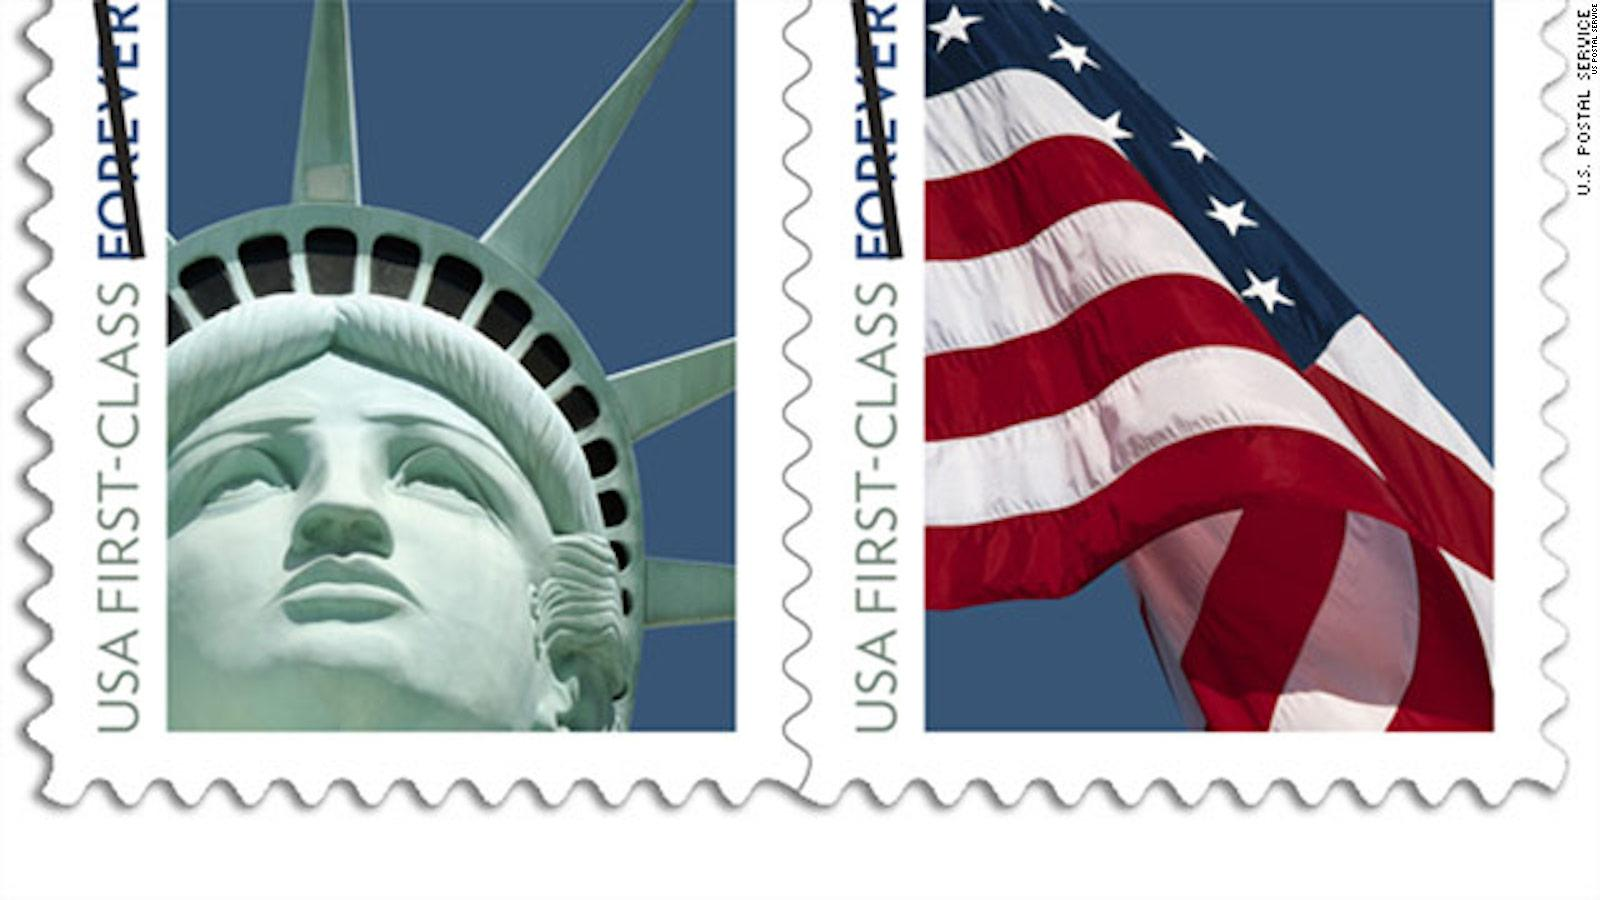 Statue Of Liberty Stamp Mix Up Leads To $3.5M Payout   CNN Style